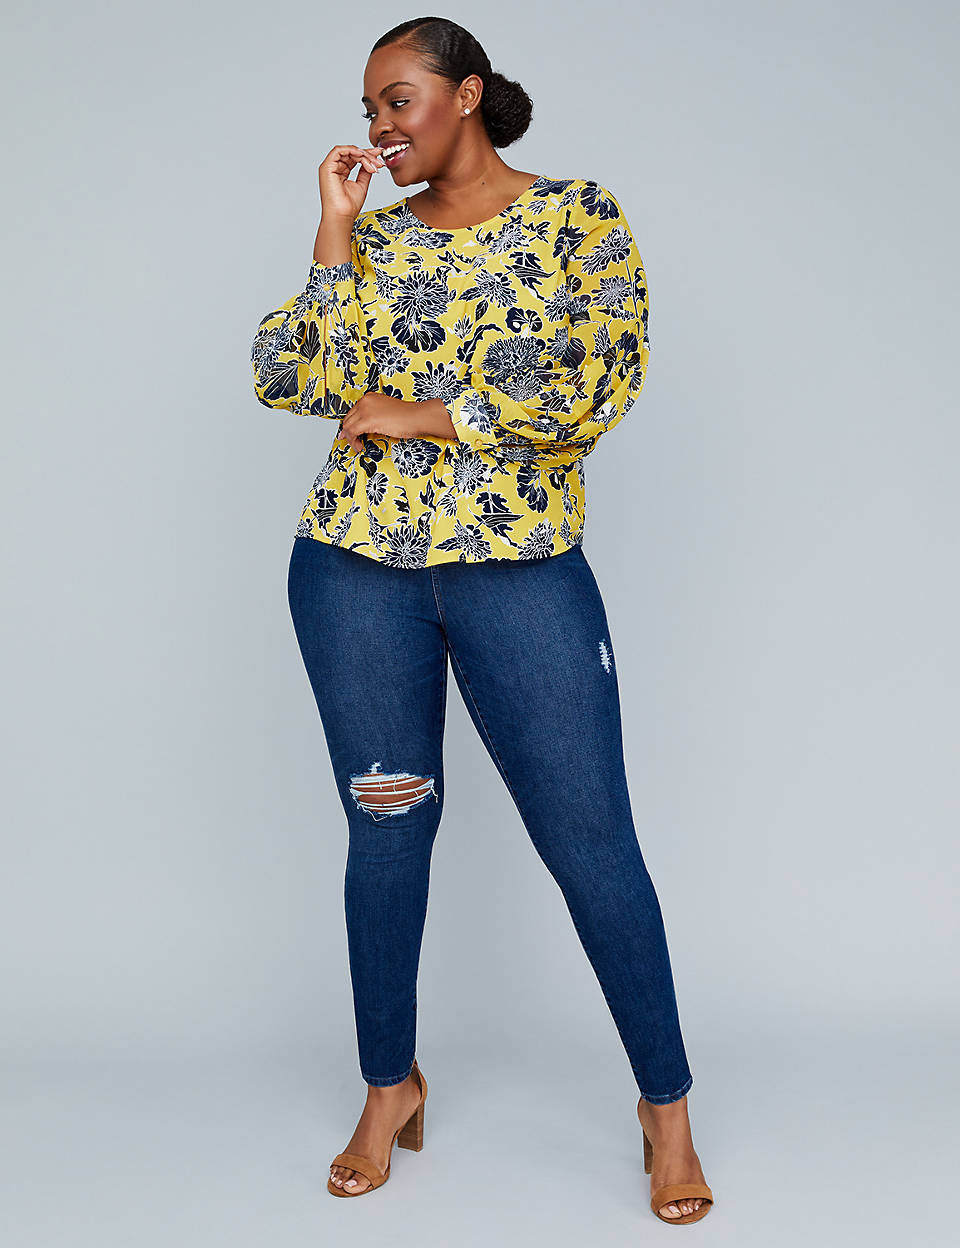 lane bryant girl with curves jeans